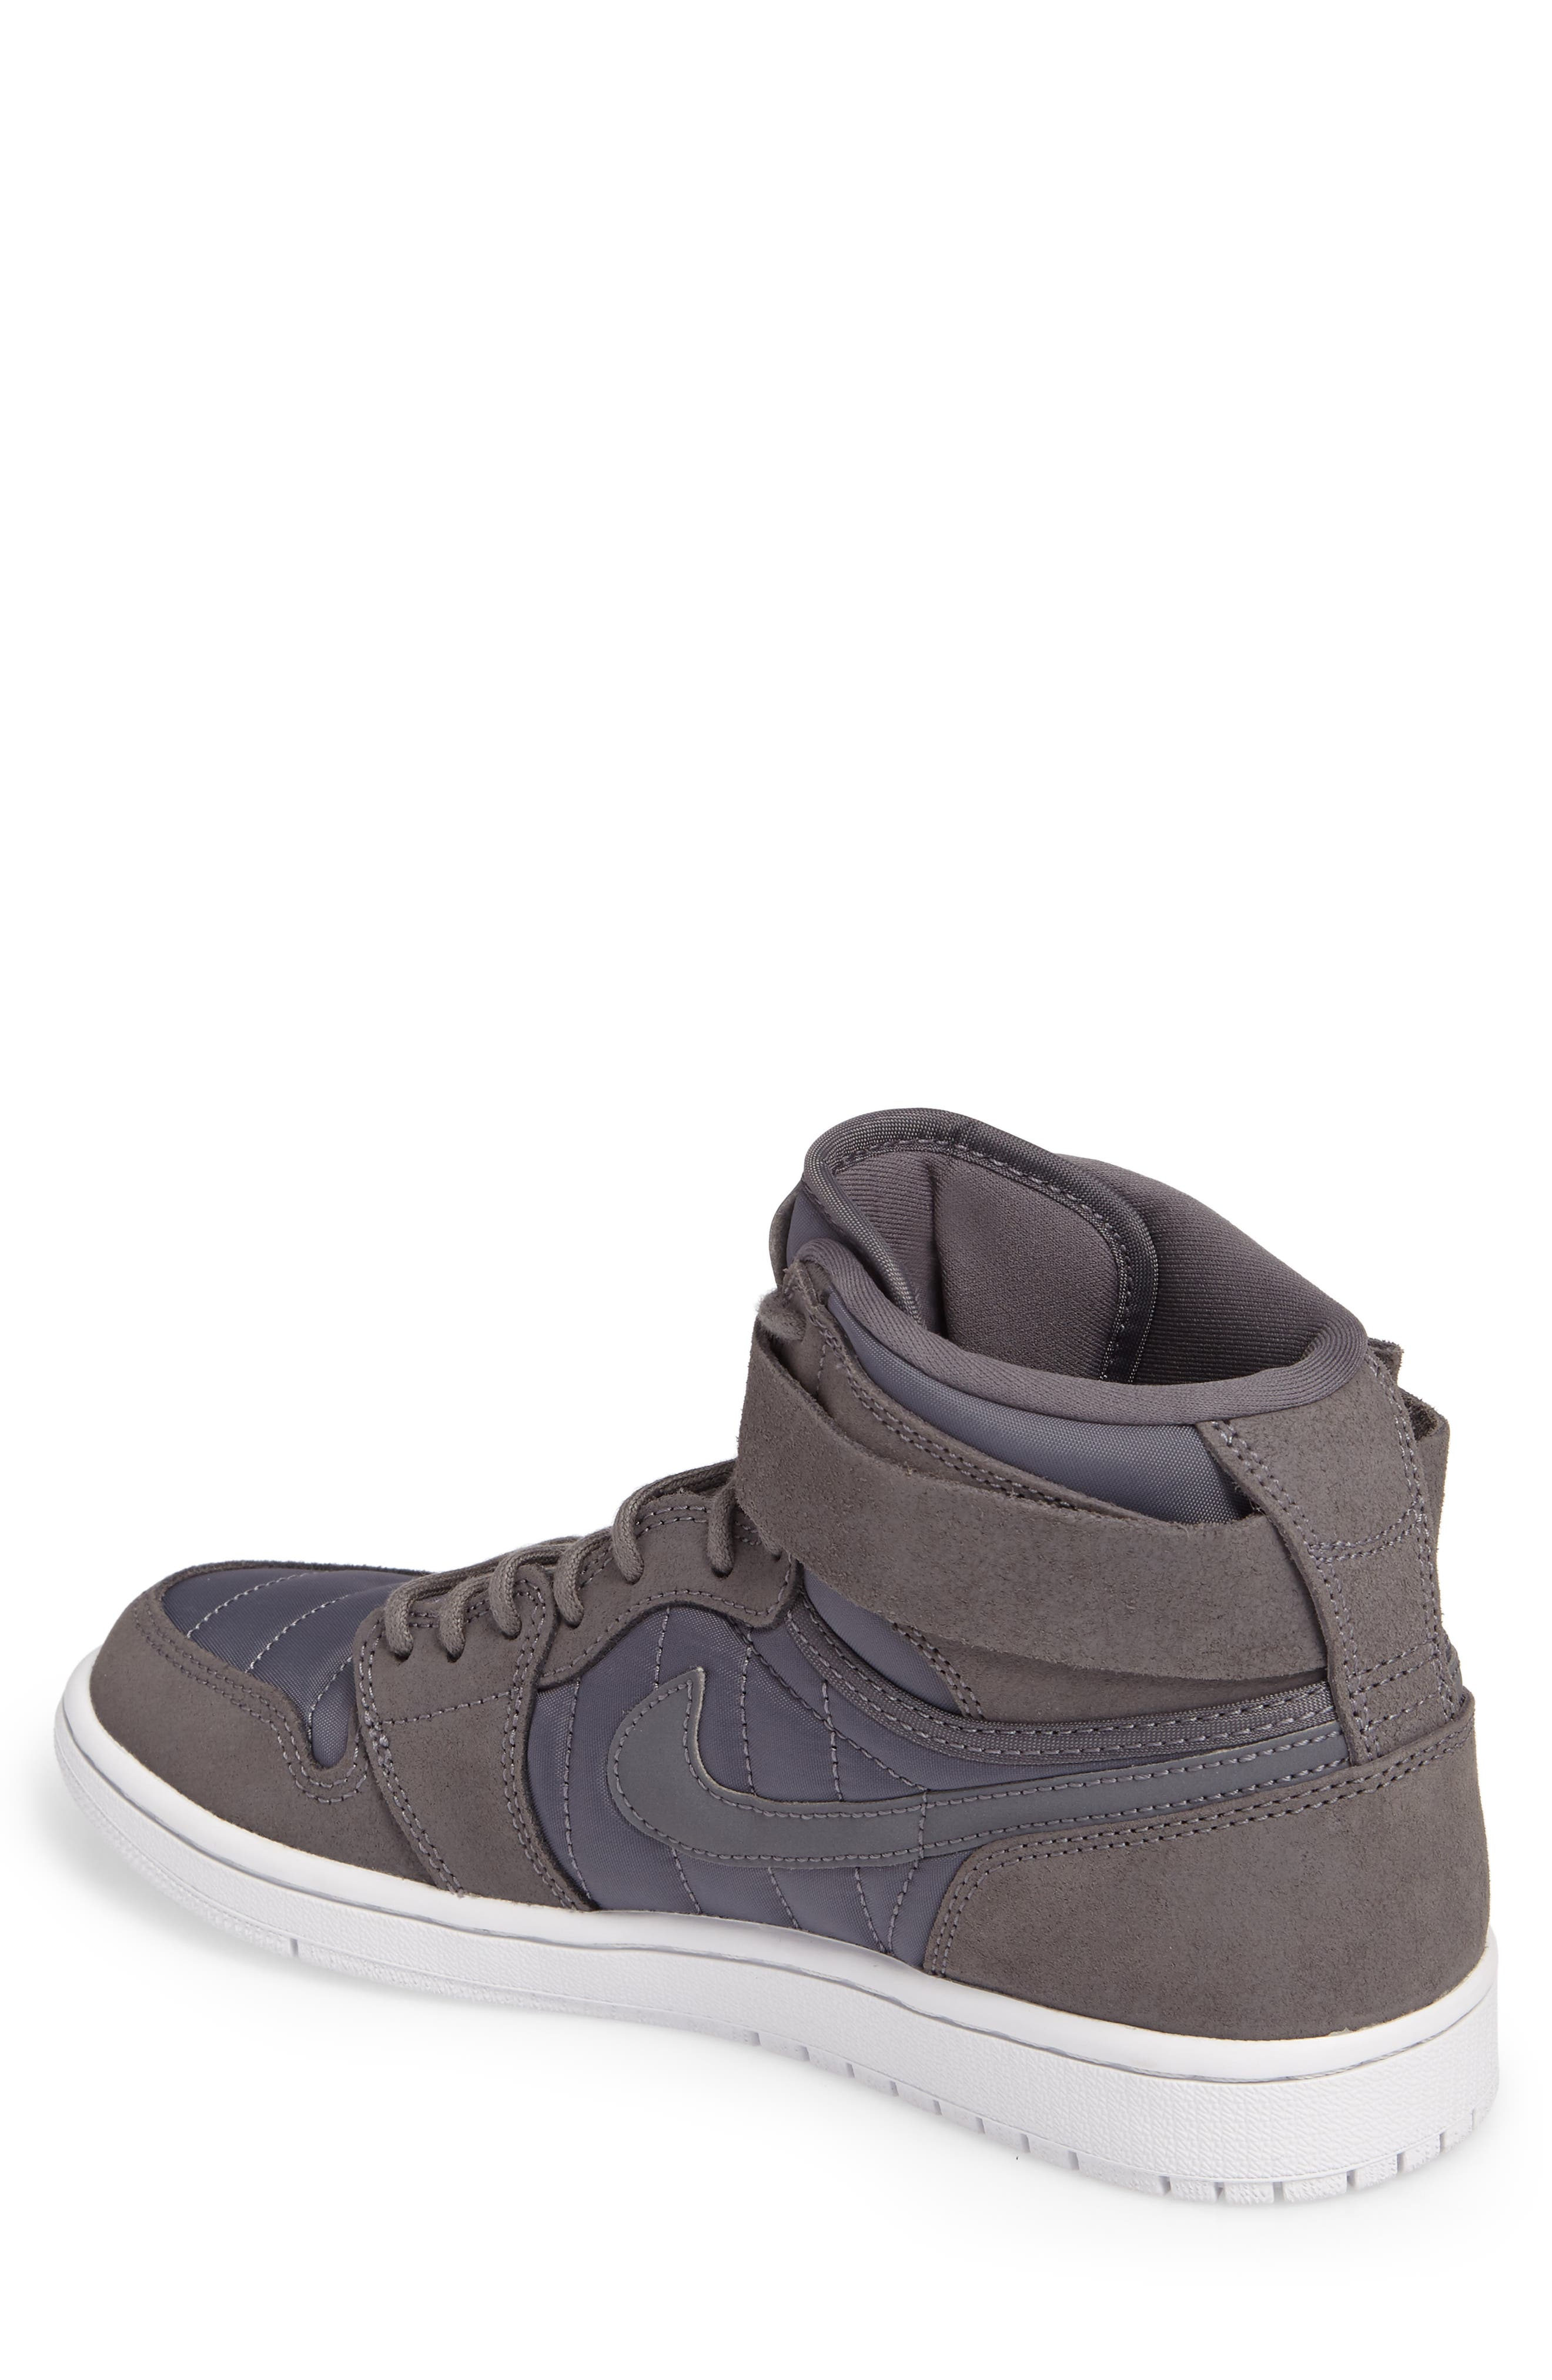 Air Jordan 1 Sneaker,                             Alternate thumbnail 2, color,                             Dark Grey/Anthracite/Platinum